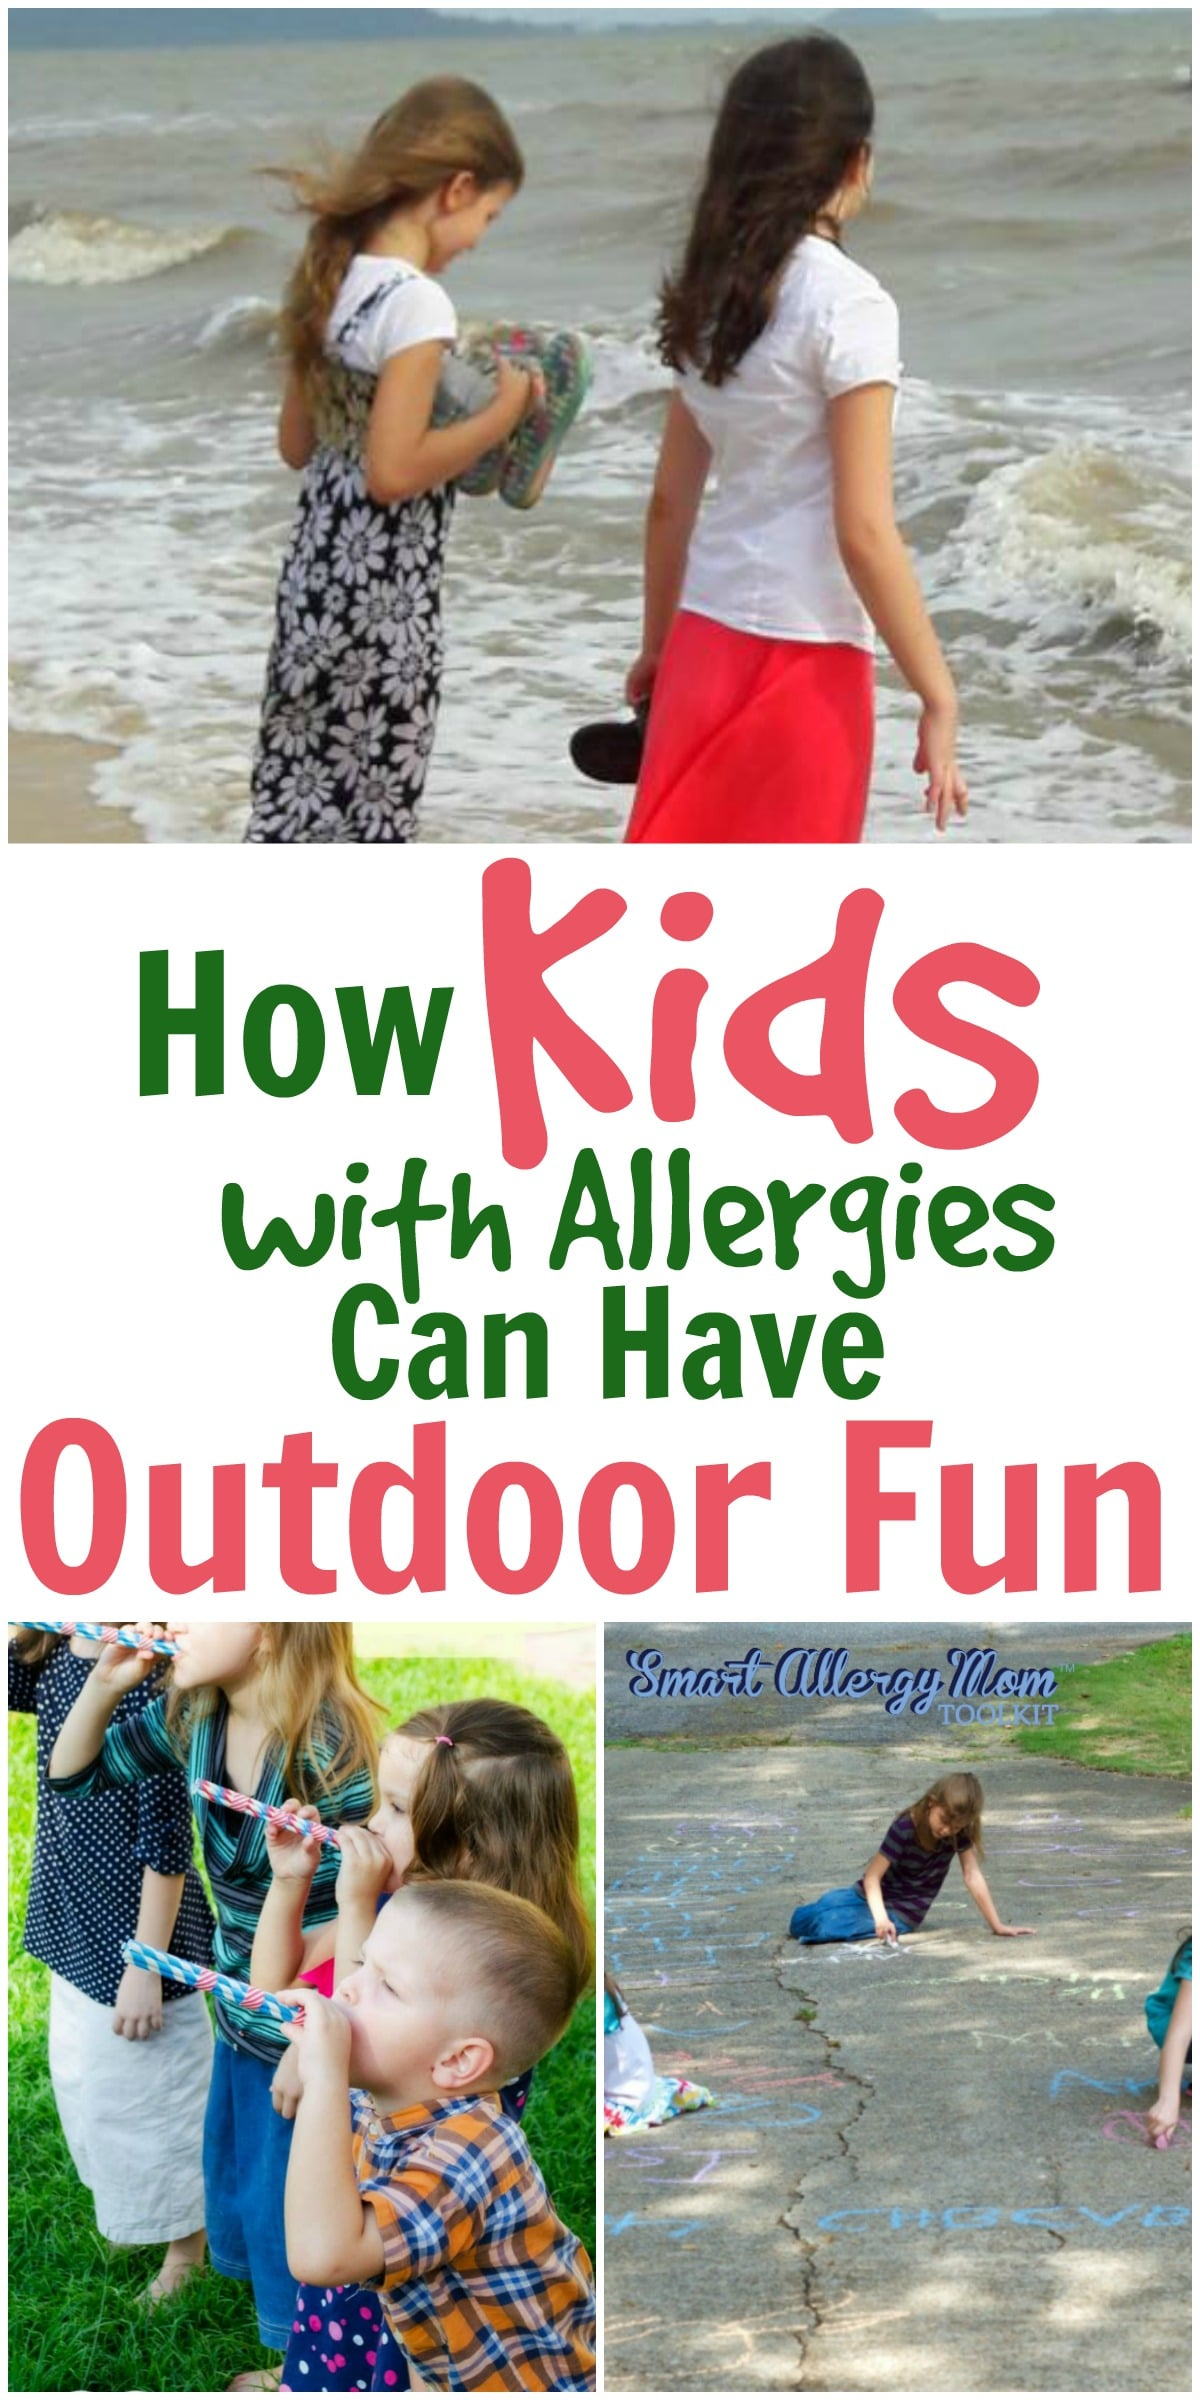 how ids with allergies can have outdoor fun